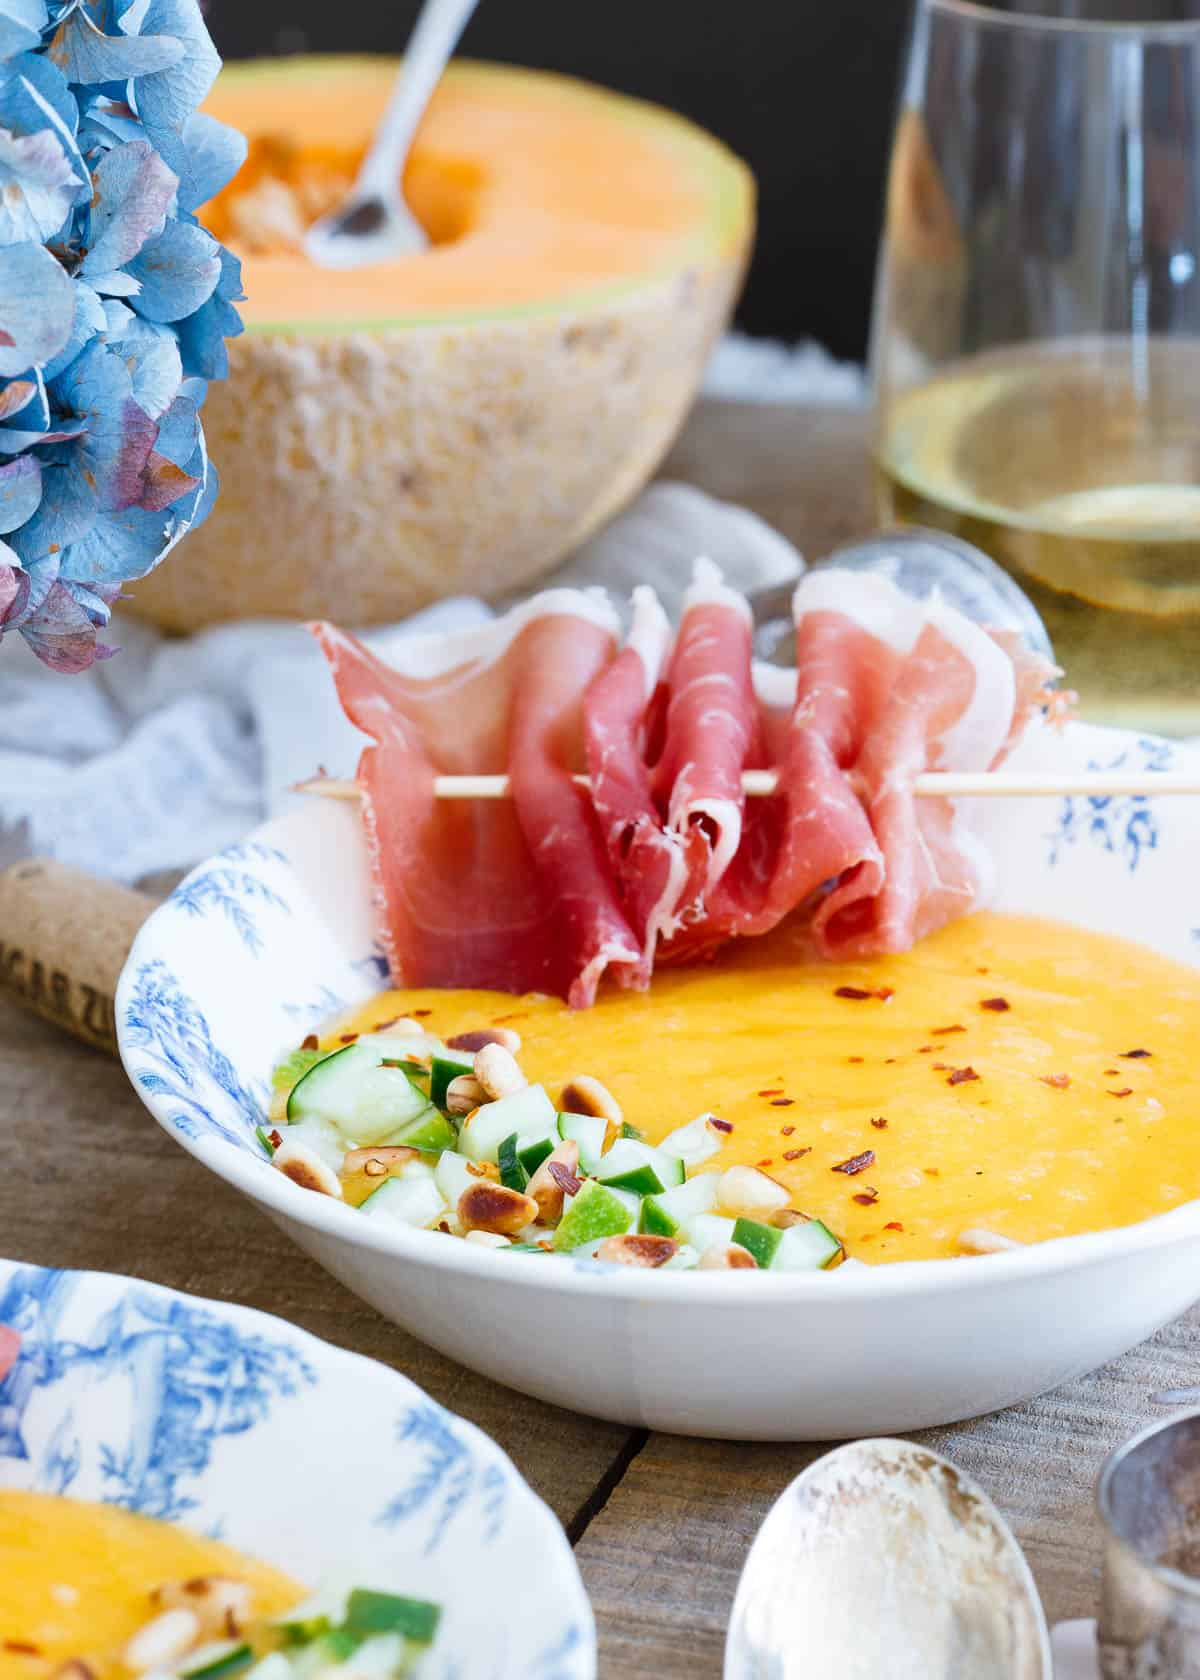 Mango Melon Soup with Pickled Cucumber is the perfect light and refreshing summer meal.